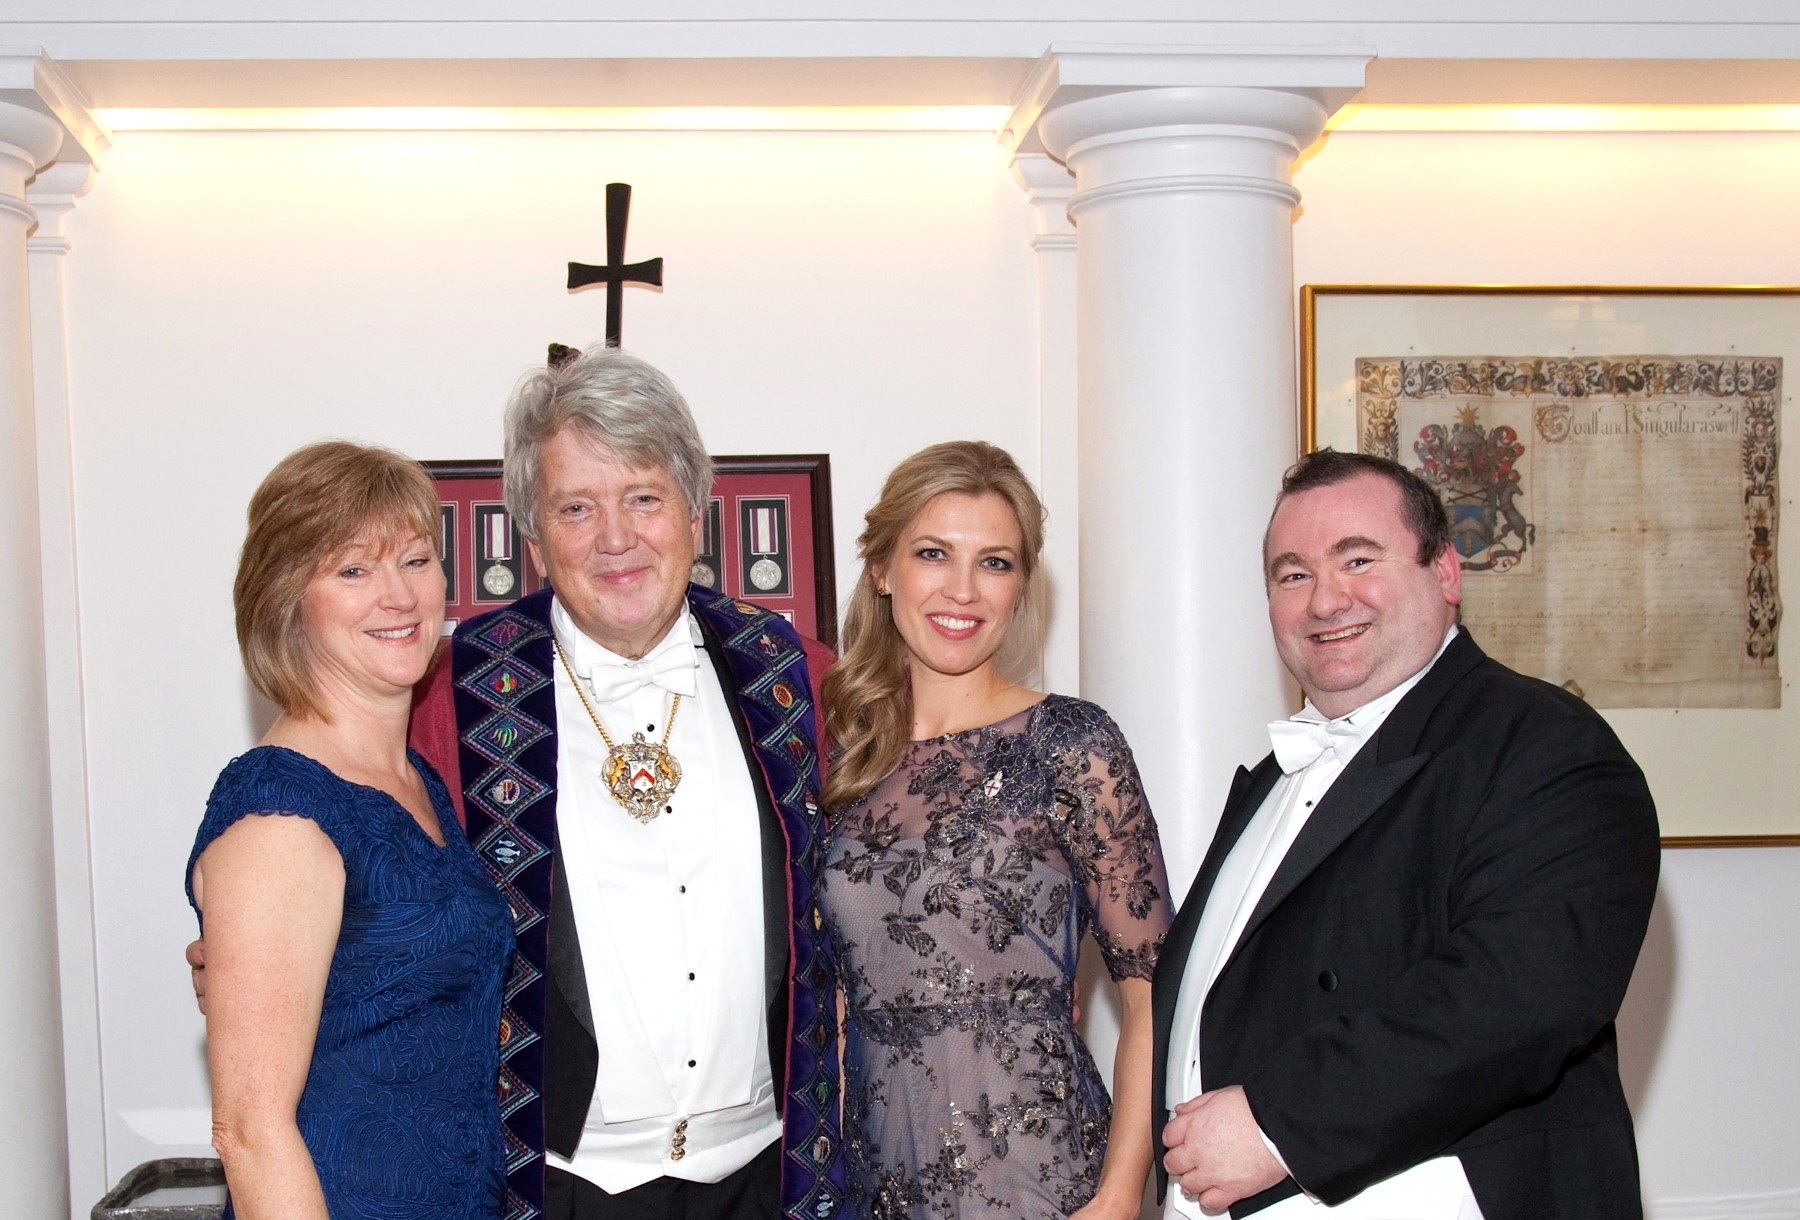 New Master of the Worshipful Company of Cooks